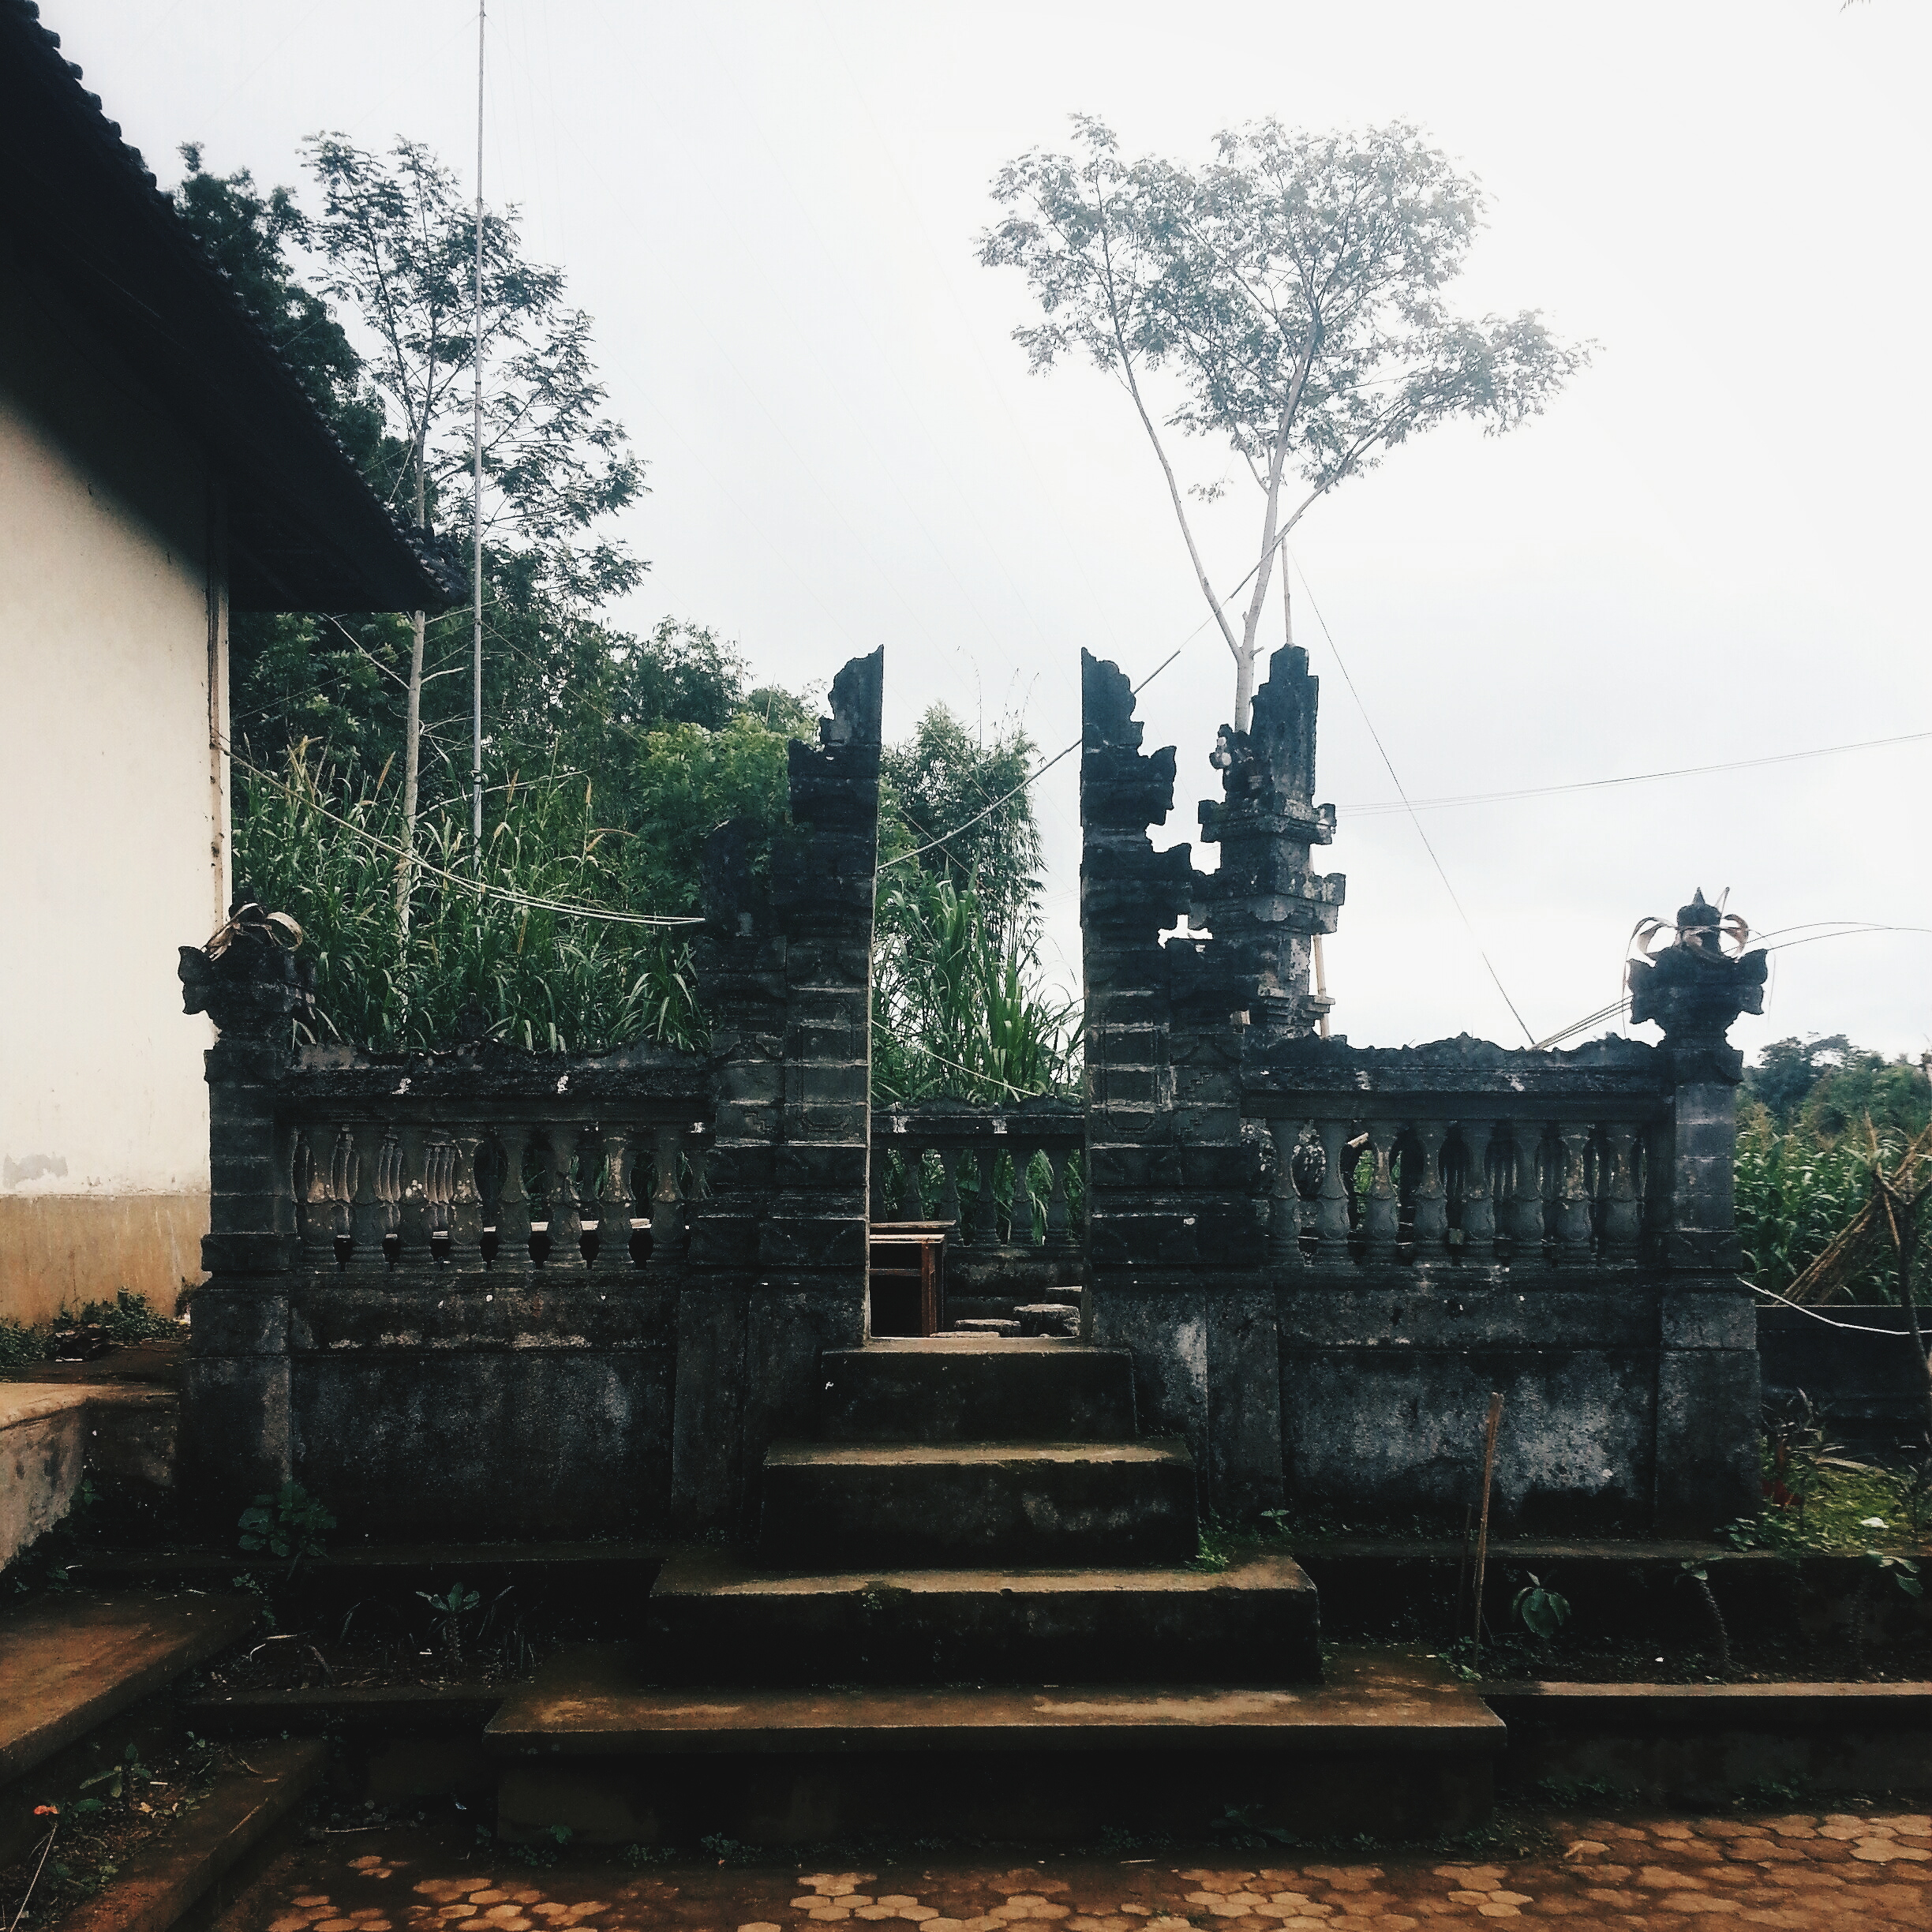 A Hindu shrine in the school compound